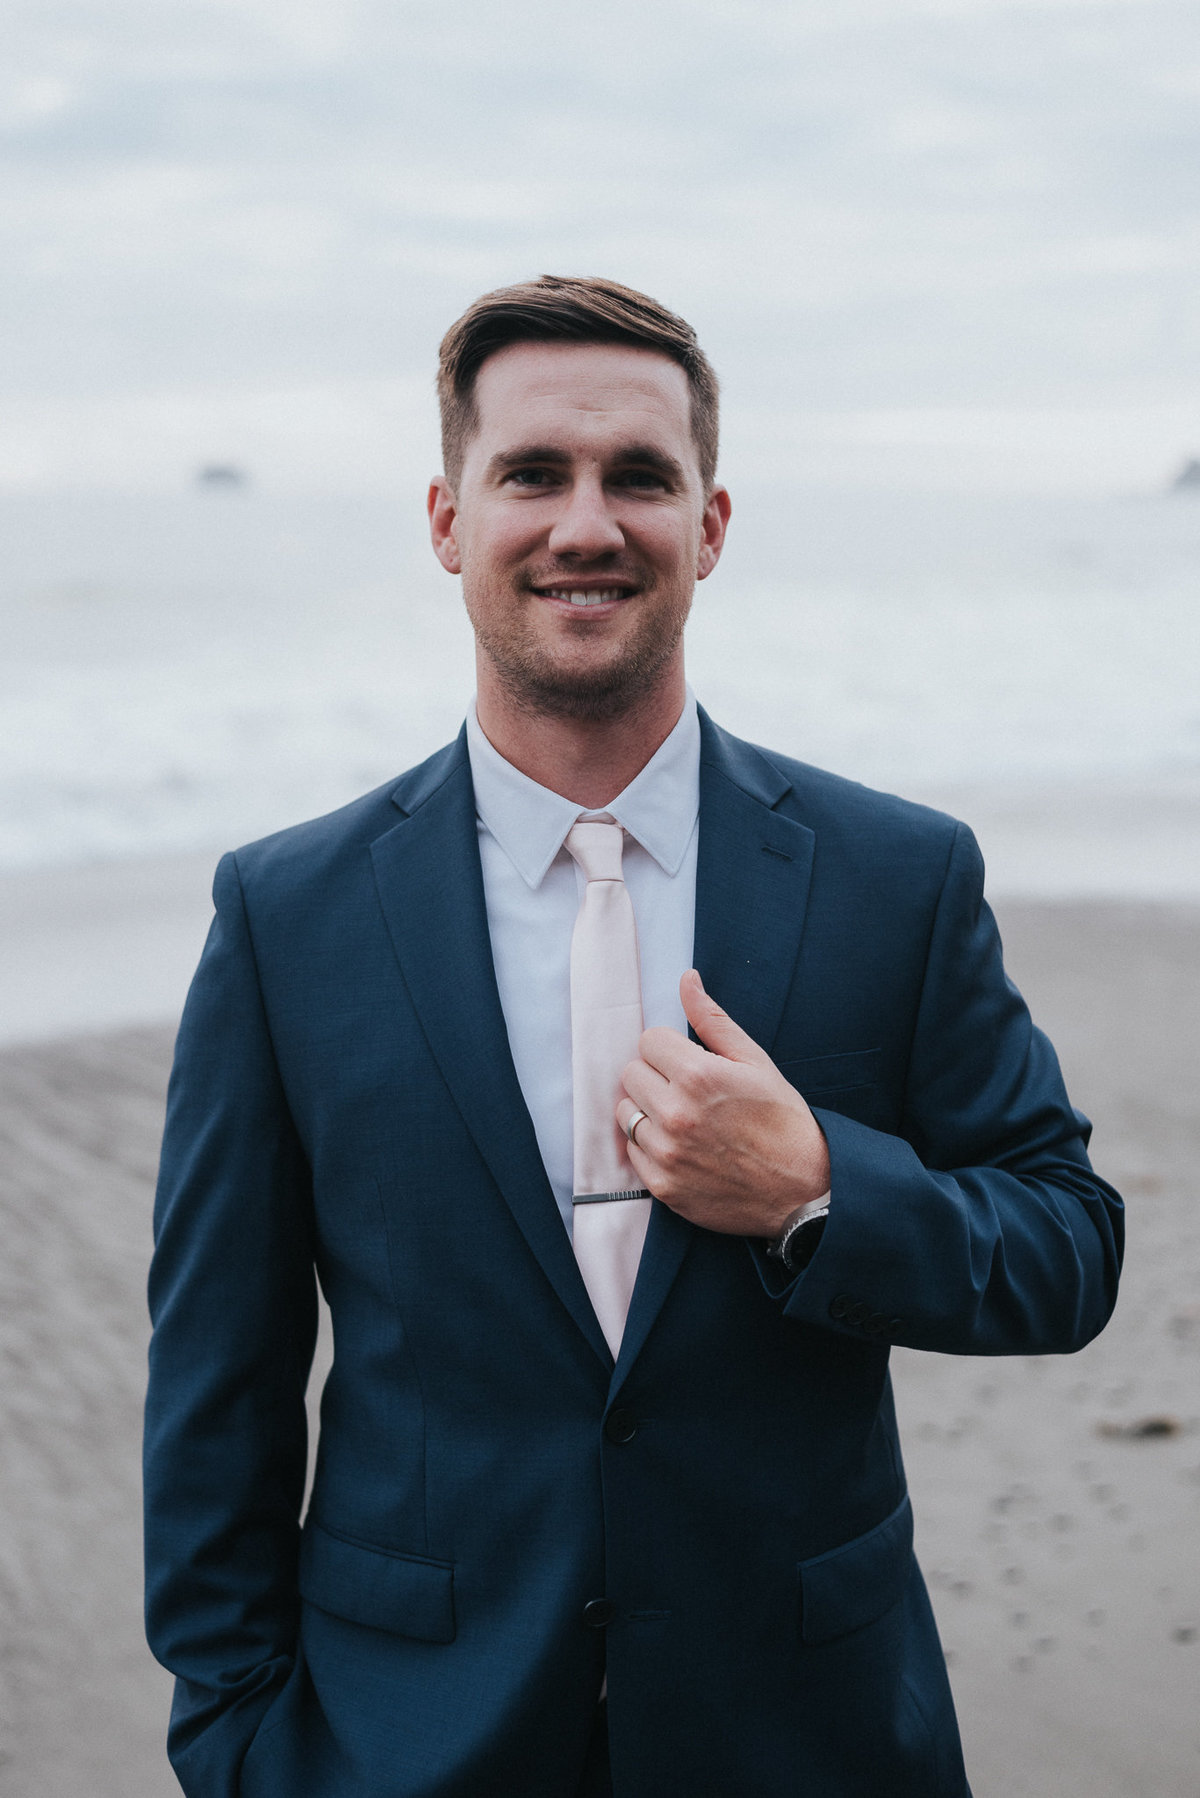 Groom on the moody beaches during his elopement in Forks, Washington